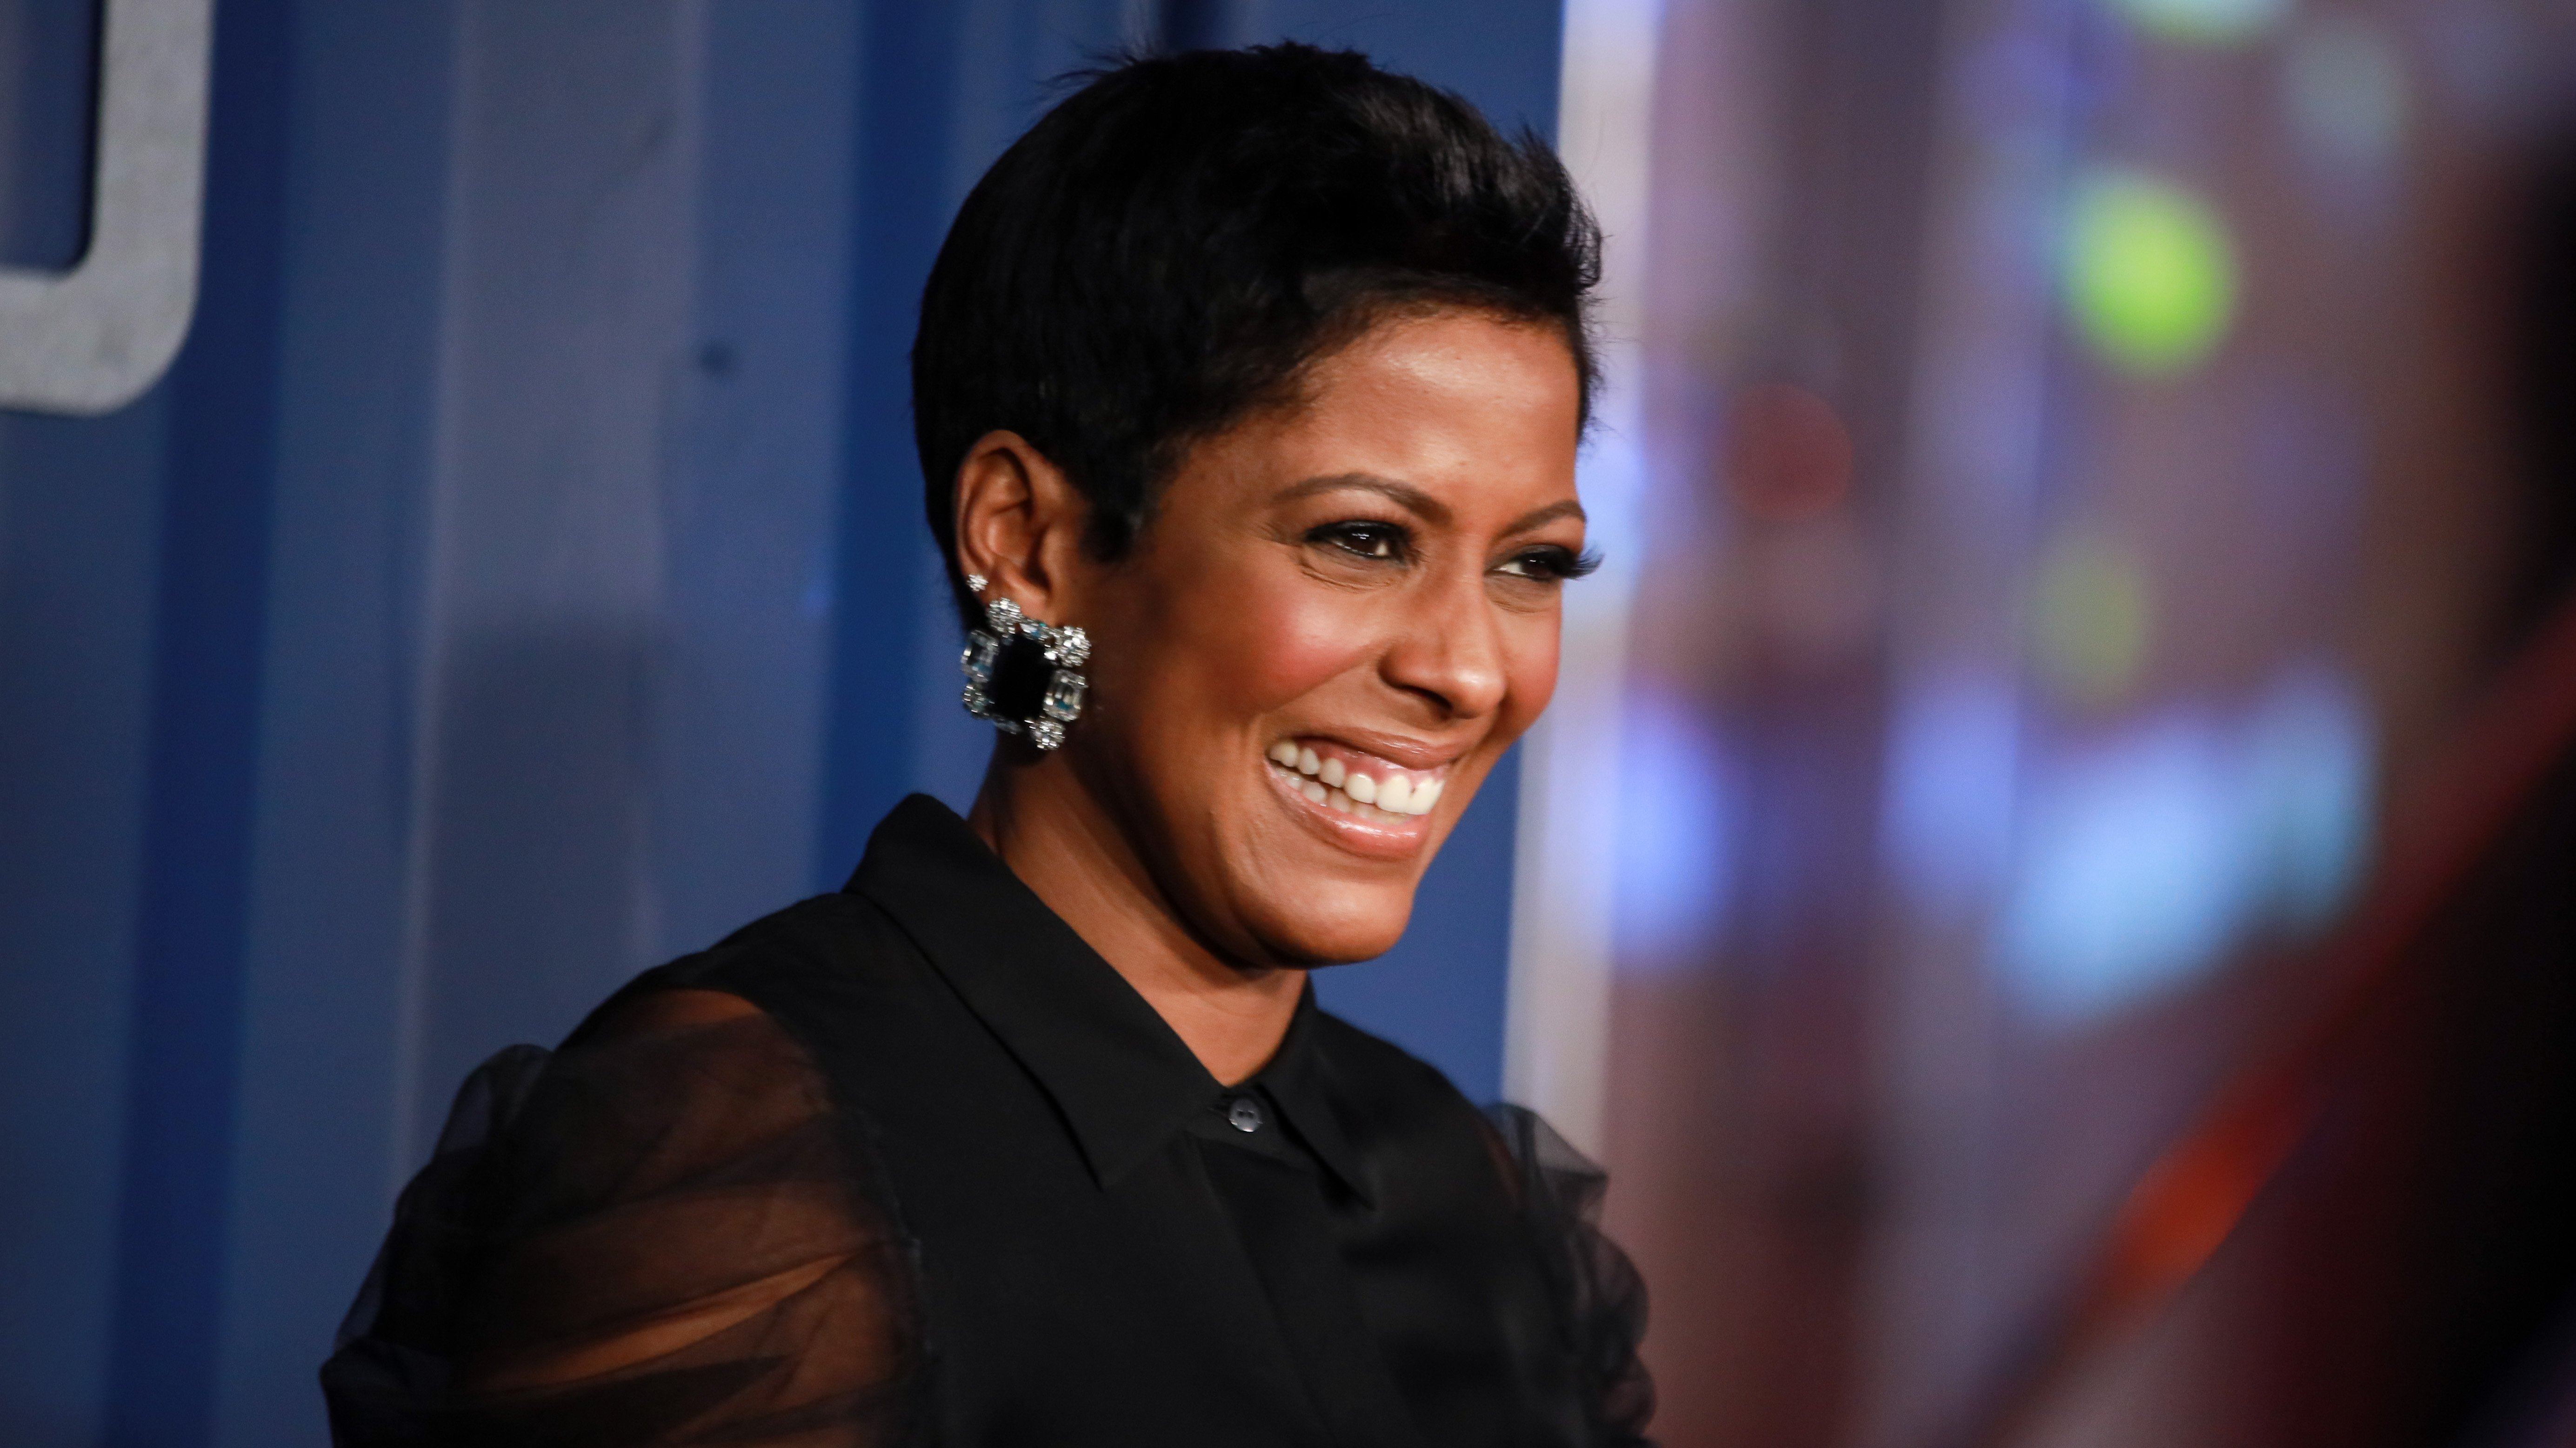 """Tamron Hall at the New York premier of Netflix's """"6 Underground"""" at The Shed on December 10, 2019 in New York City.  Source: Getty Images"""